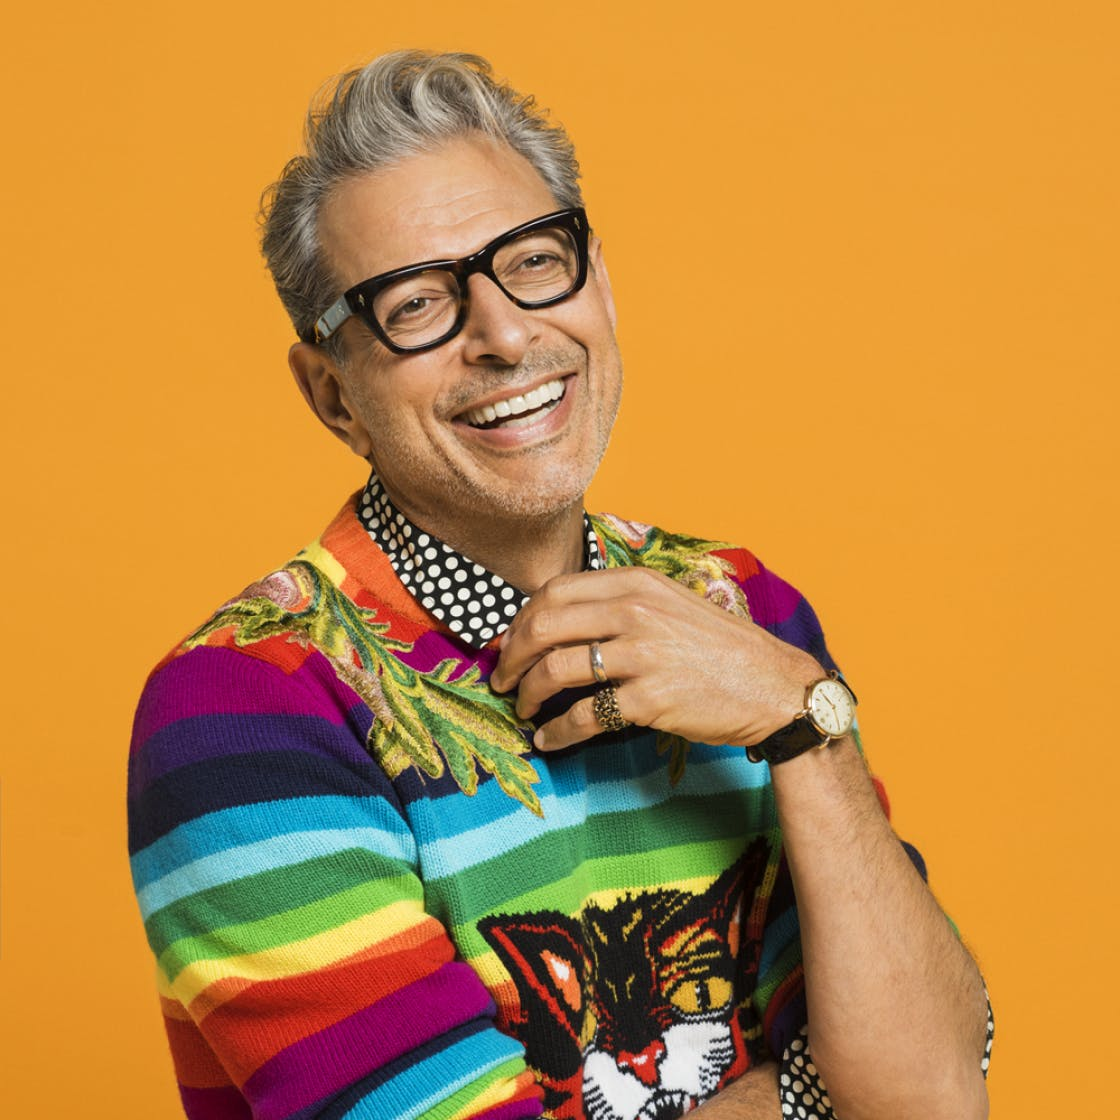 how-jeff-goldblum-spends-every-second-of-every-day-2-crop-1527762231-1000x1000.jpeg